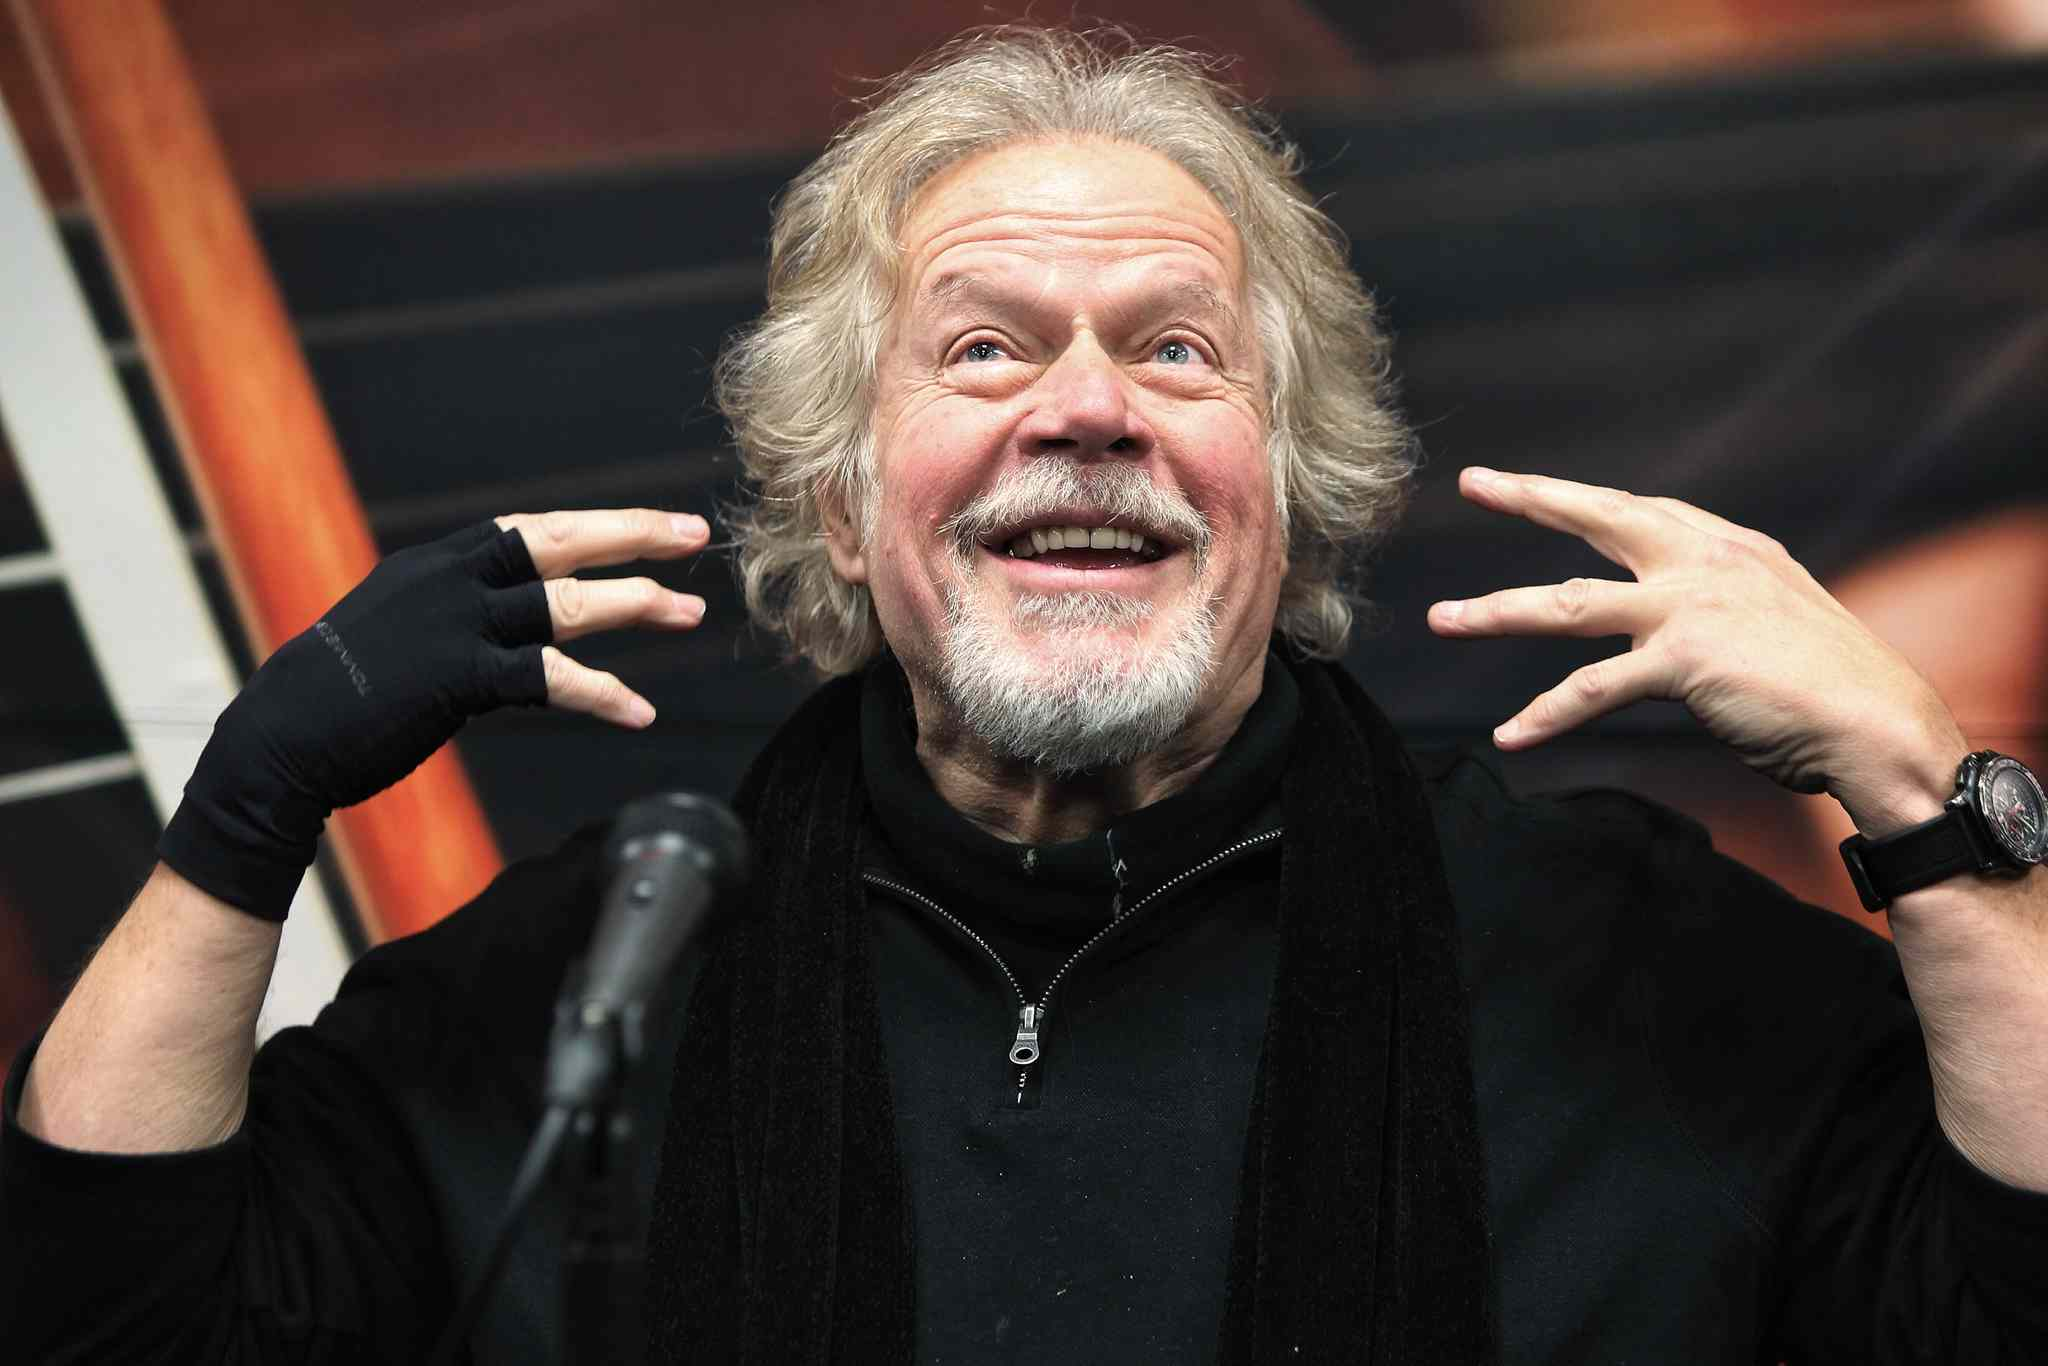 Randy Bachman discusses his upcoming collaboration with the WSO, Randy Bachman's Symphonic Overdrive.